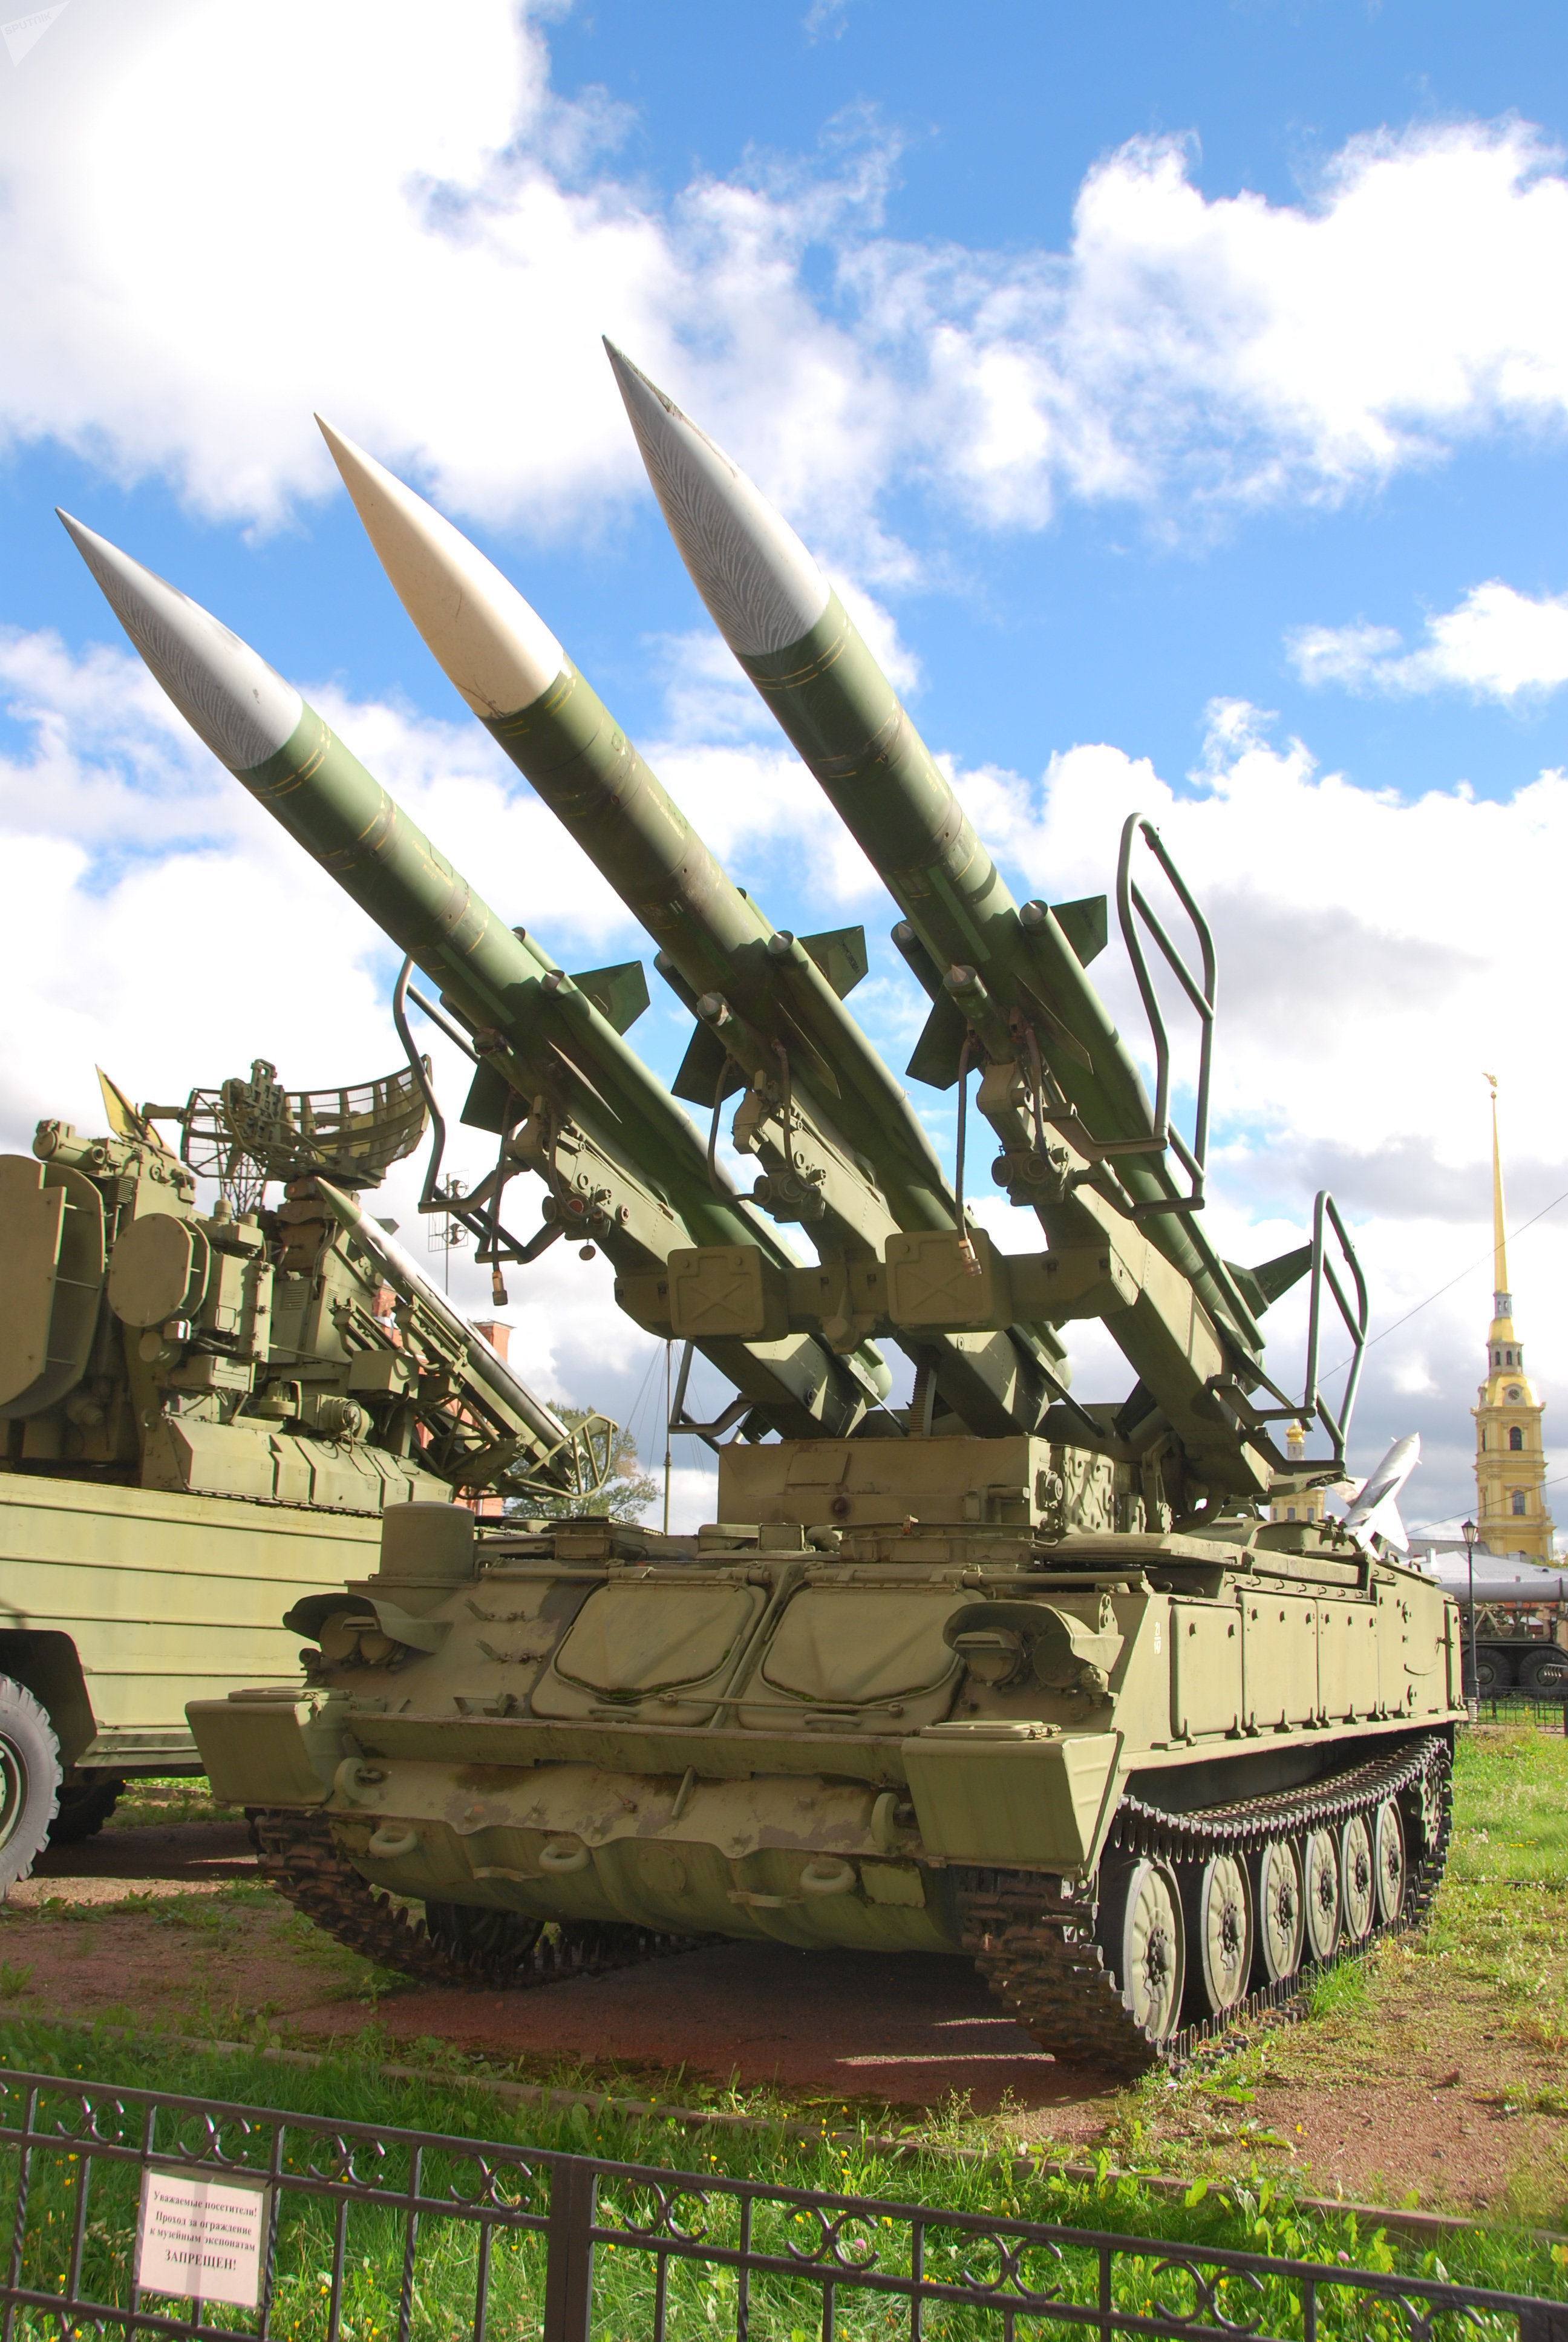 The Kub air defense system